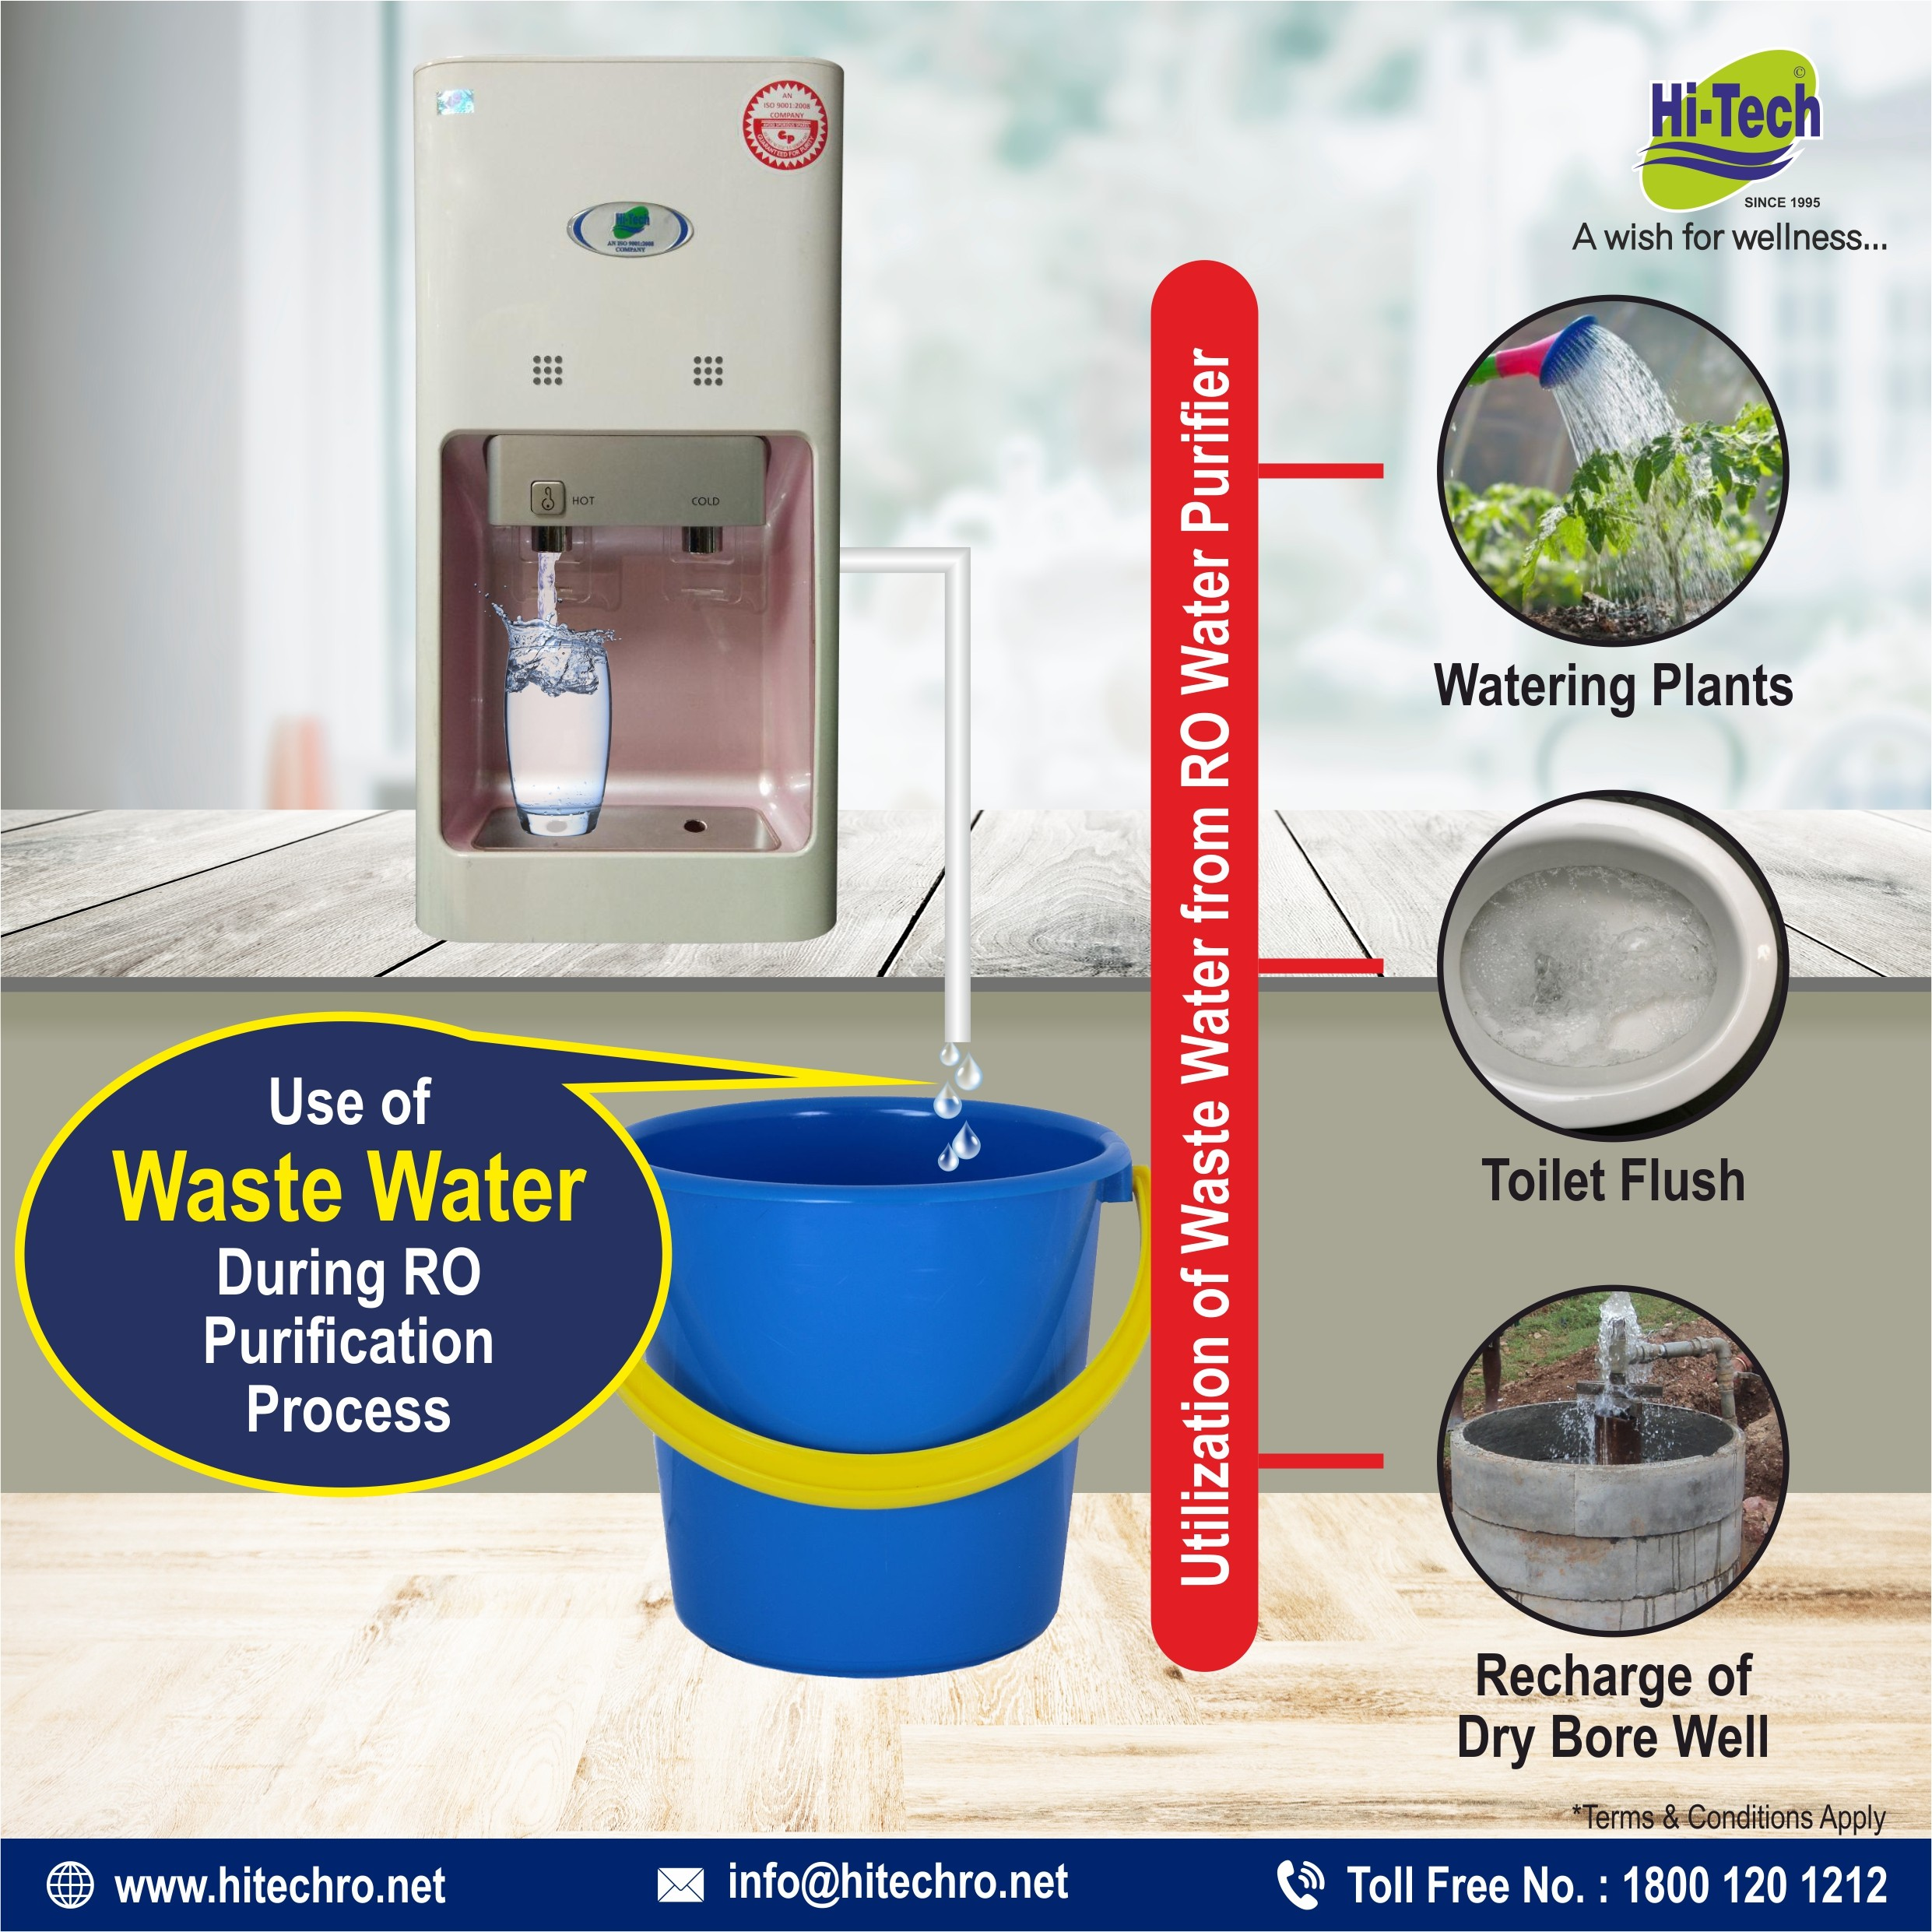 Reuse of RO Waste Water